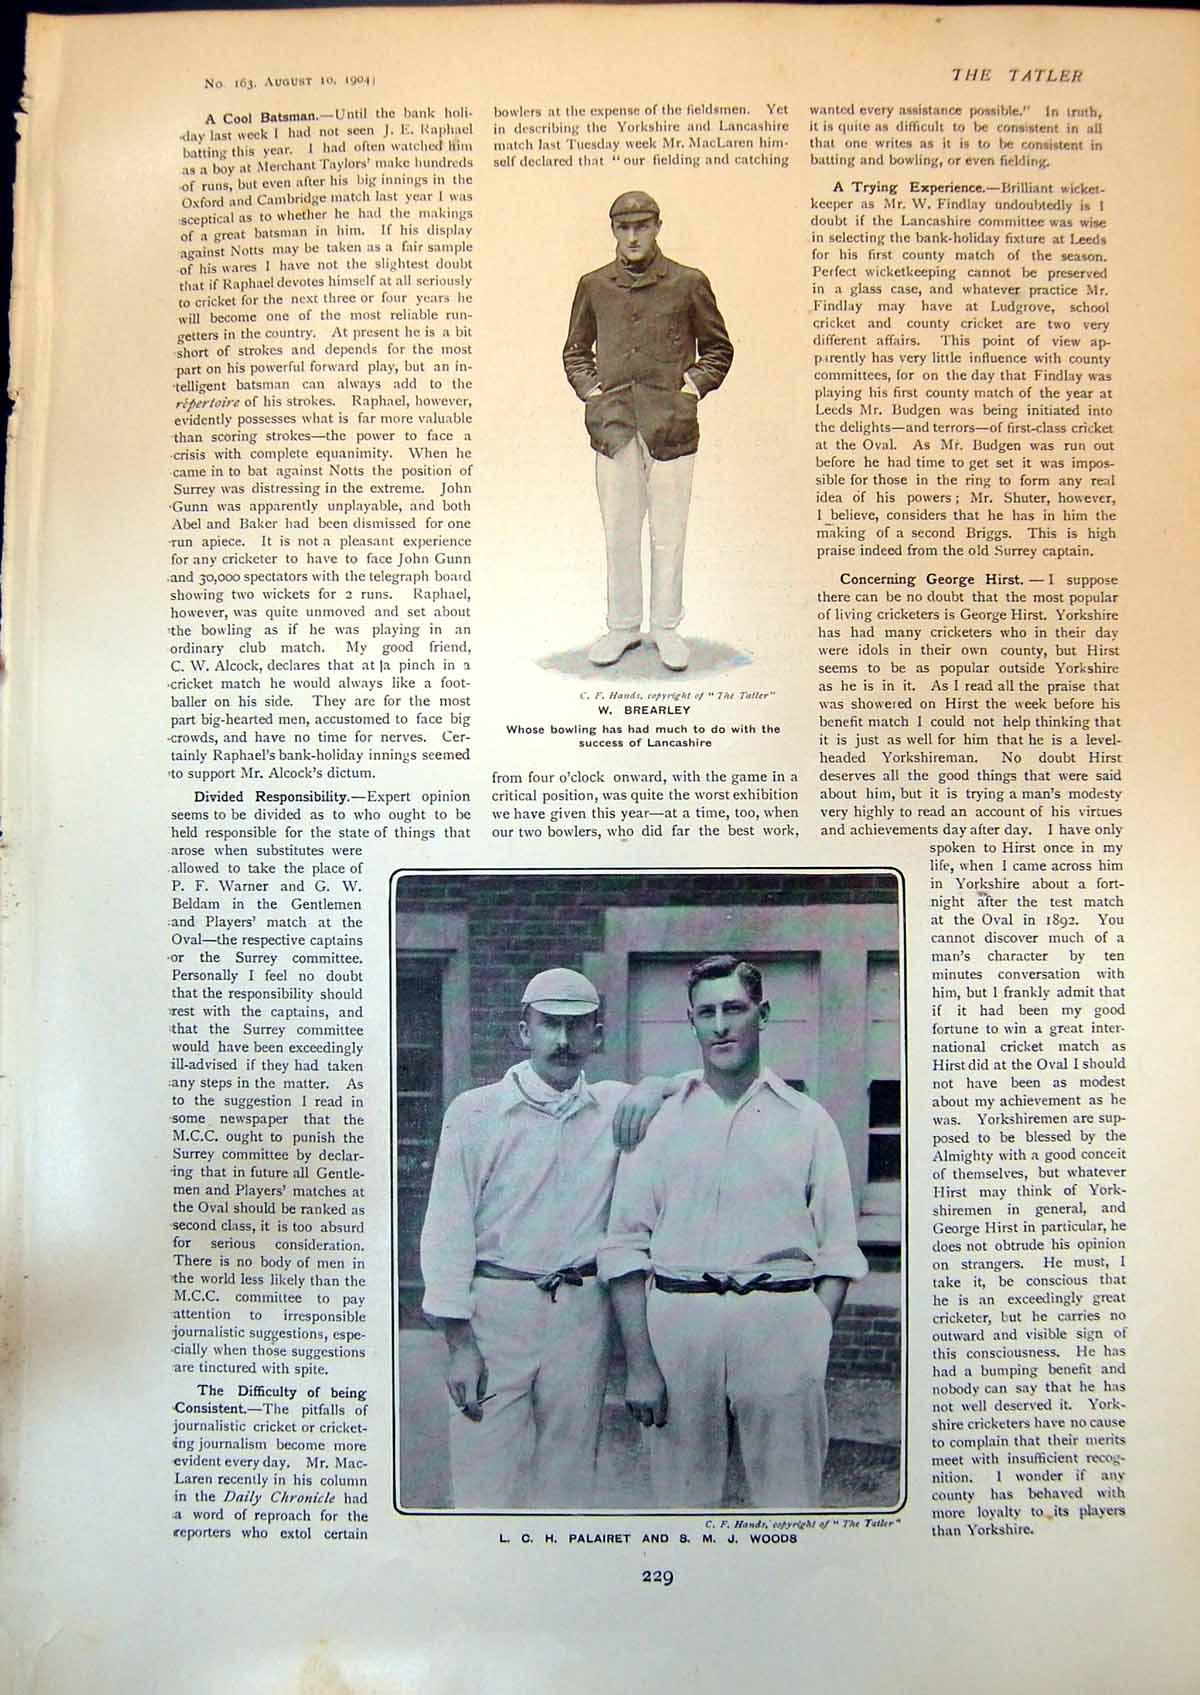 Old-W-Brearley-Bowler-Lancashire-L-Palairet-S-Woods-George-Sims-1904-20th